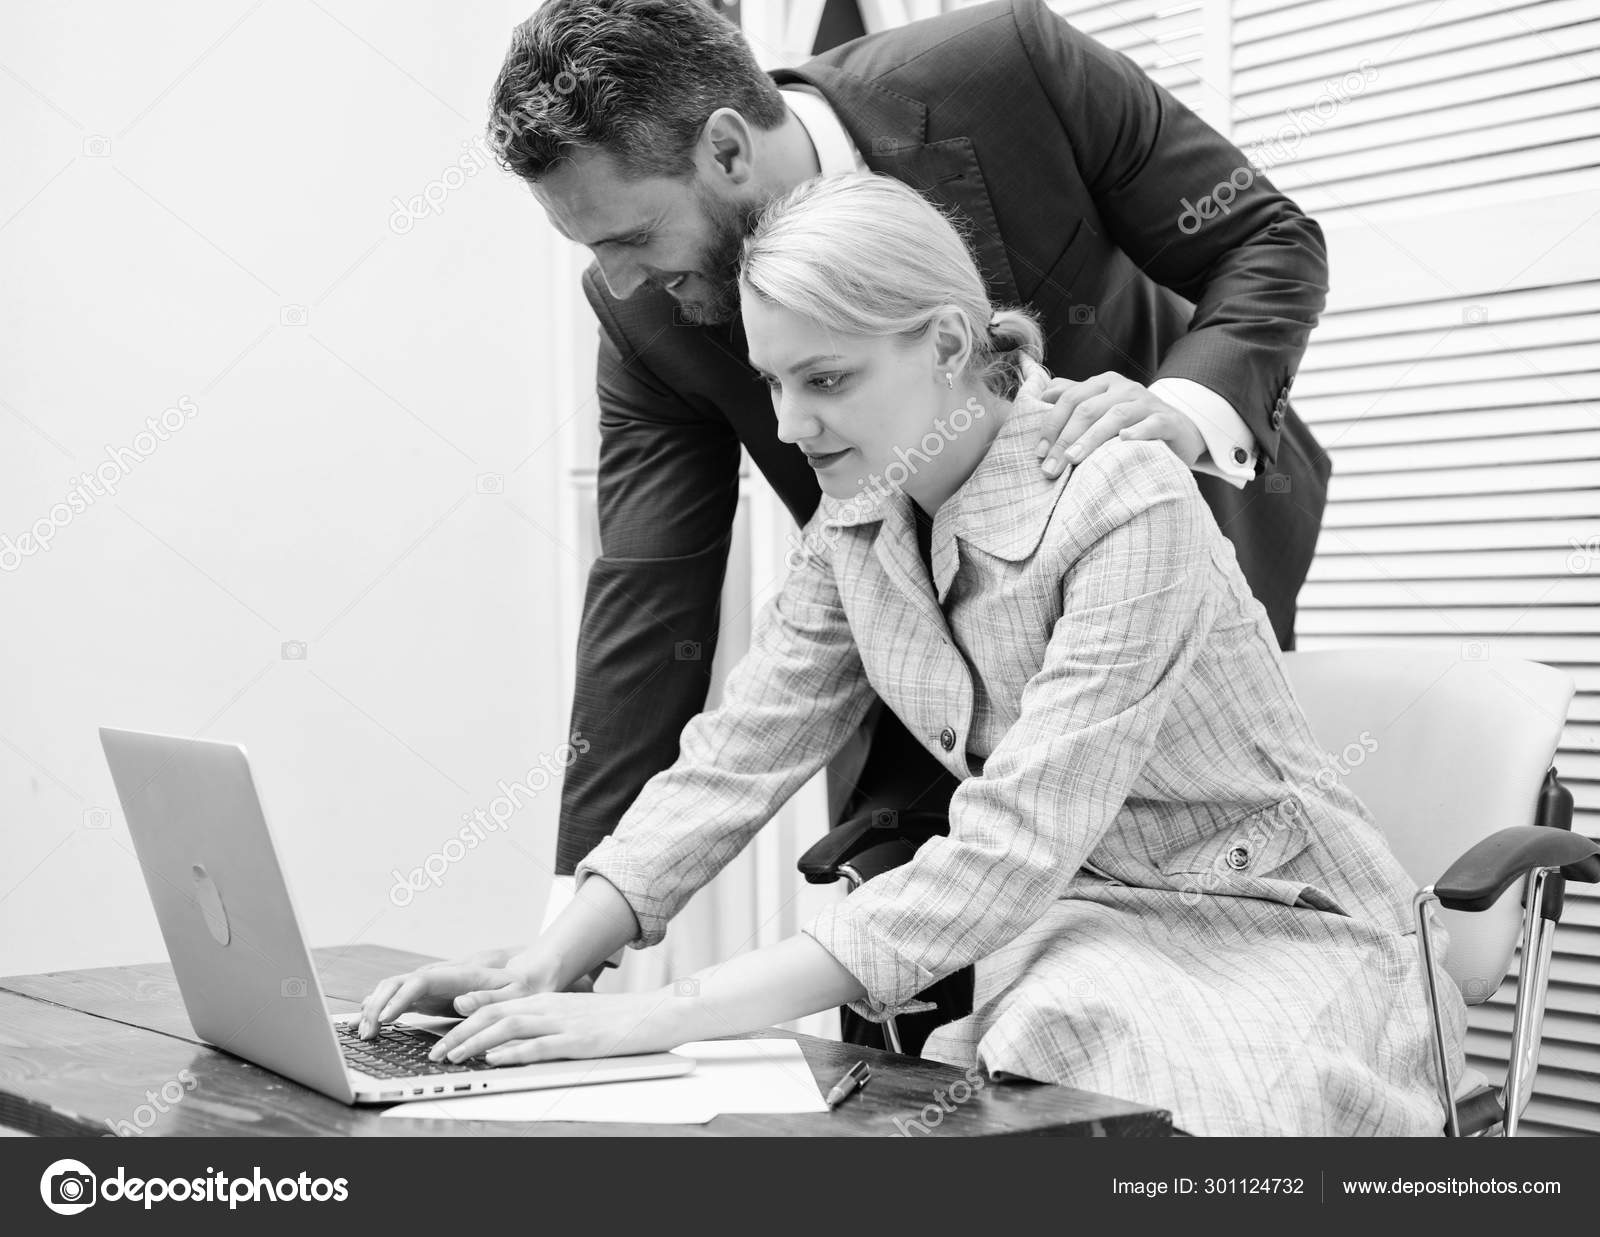 Pornography in the workplace